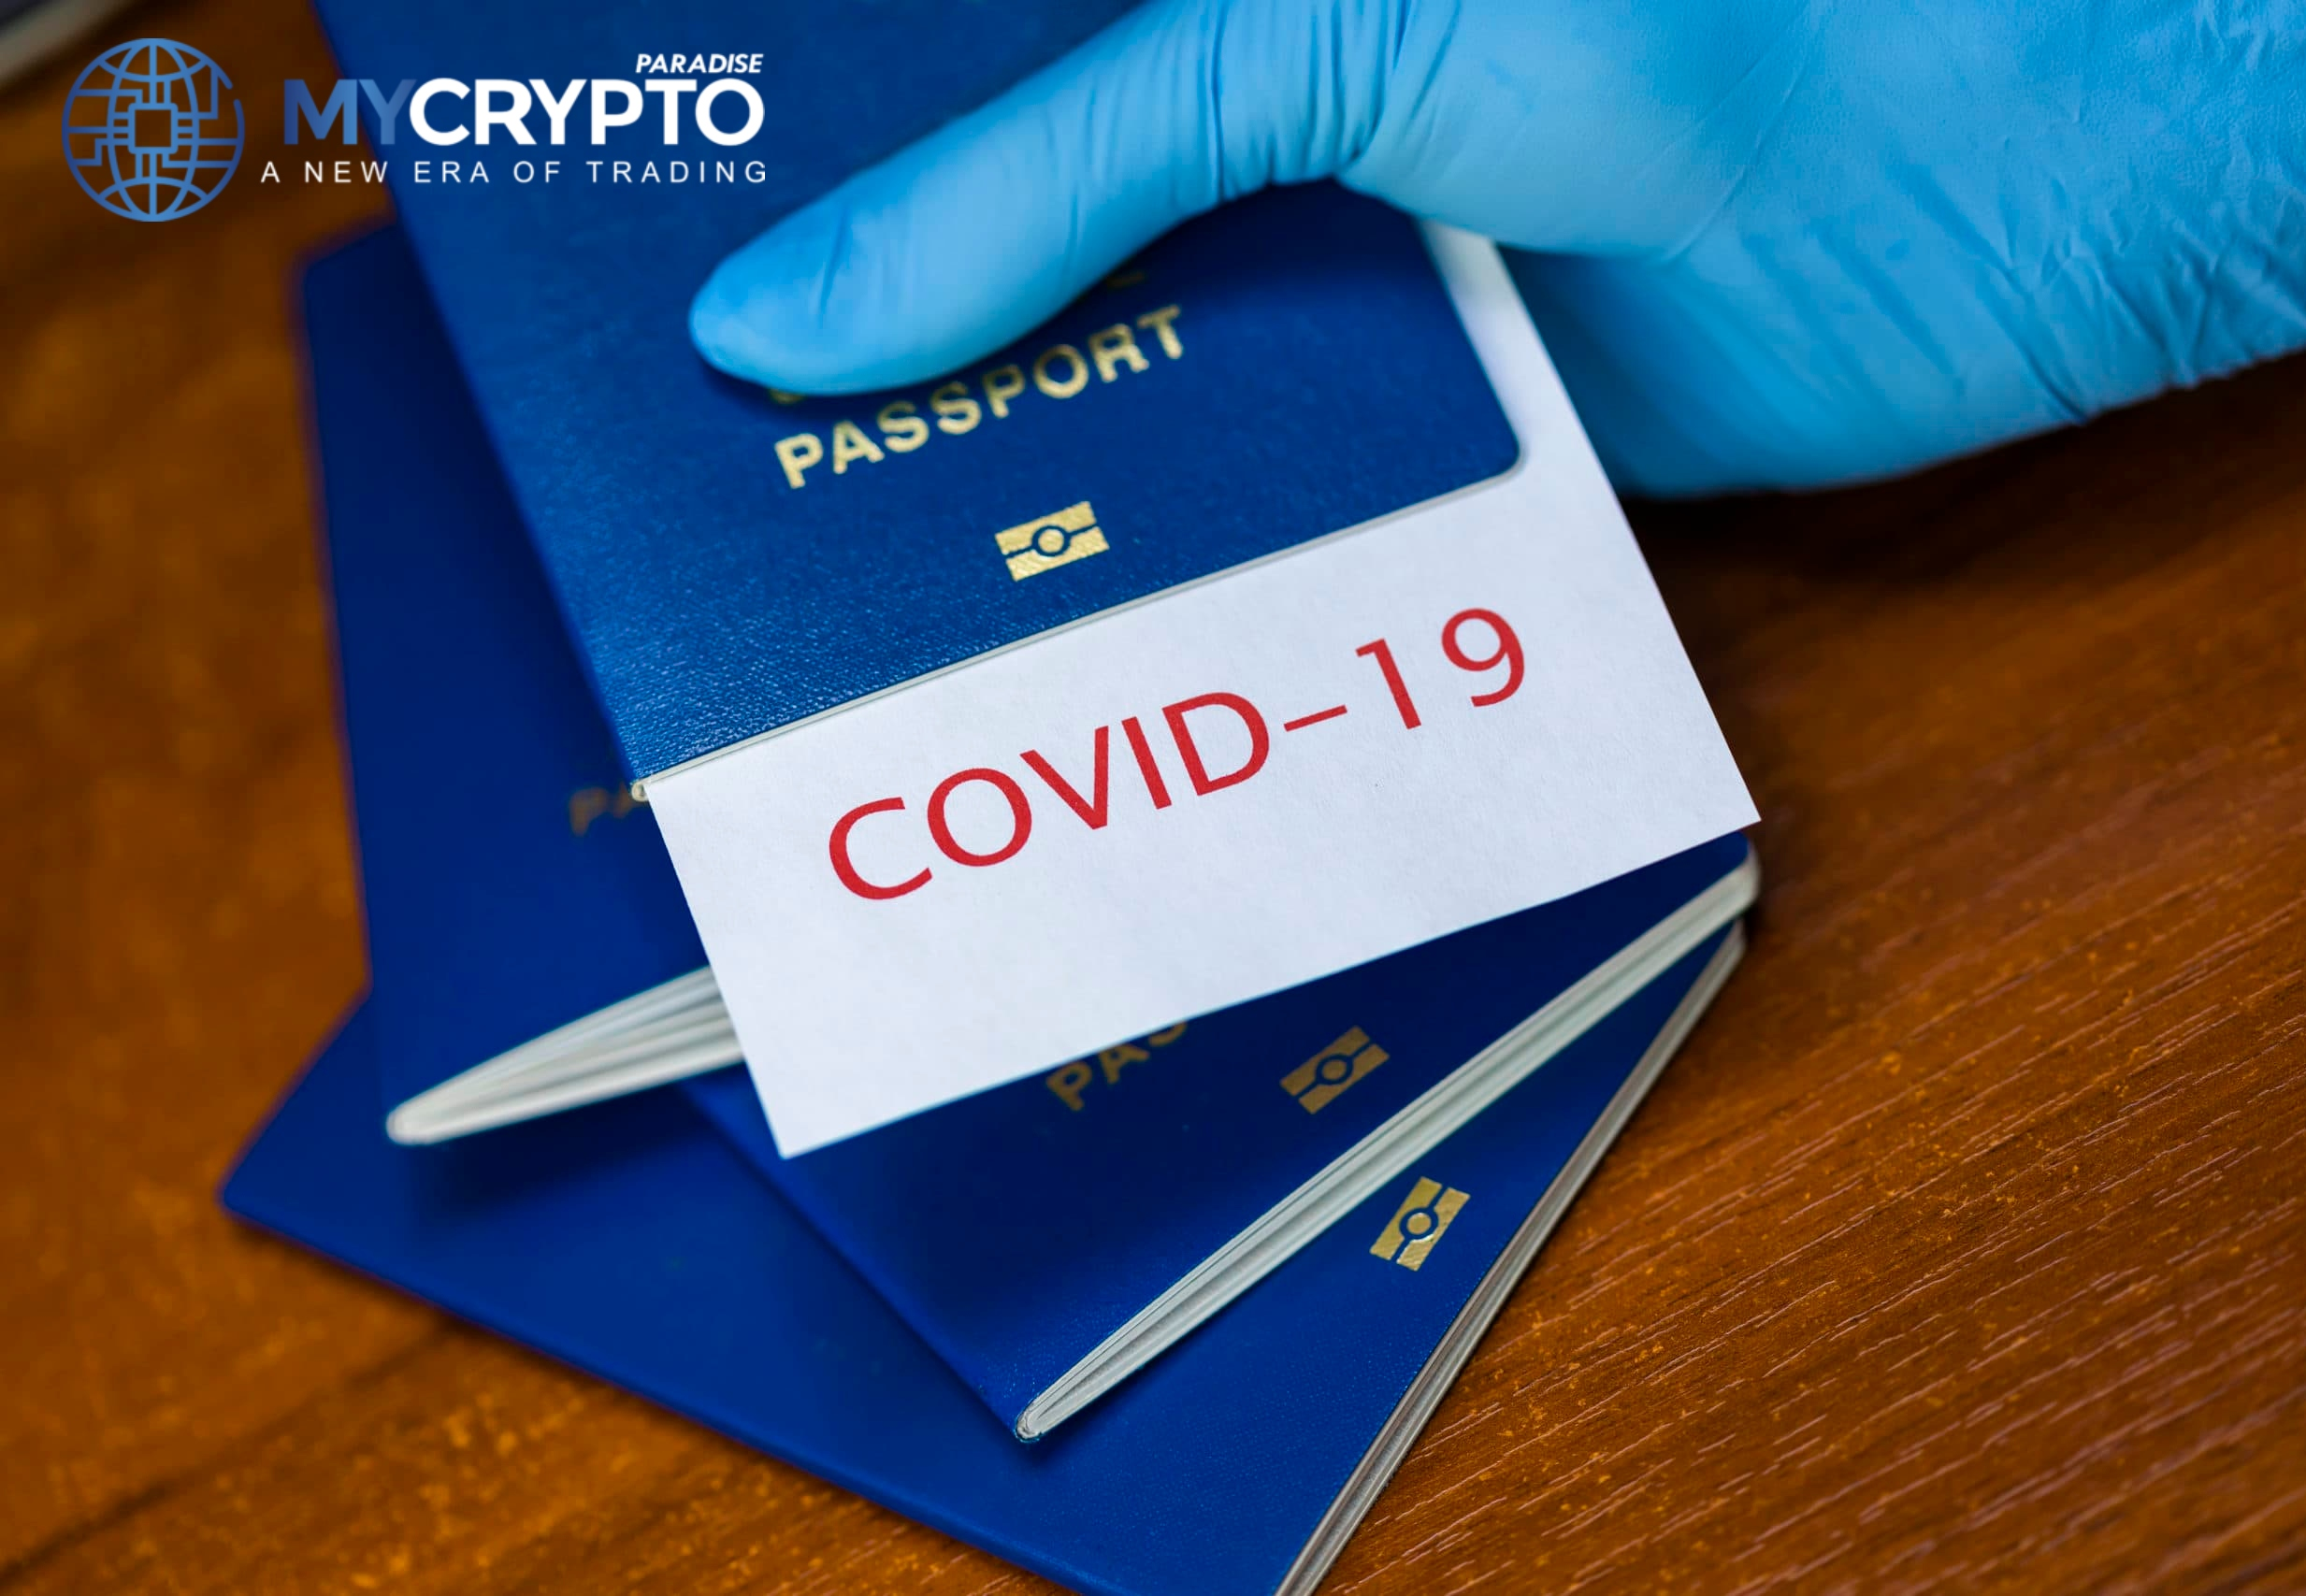 Air France Sets Out a Trial Period for the Blockchain-Based Covid-19 Health Passport